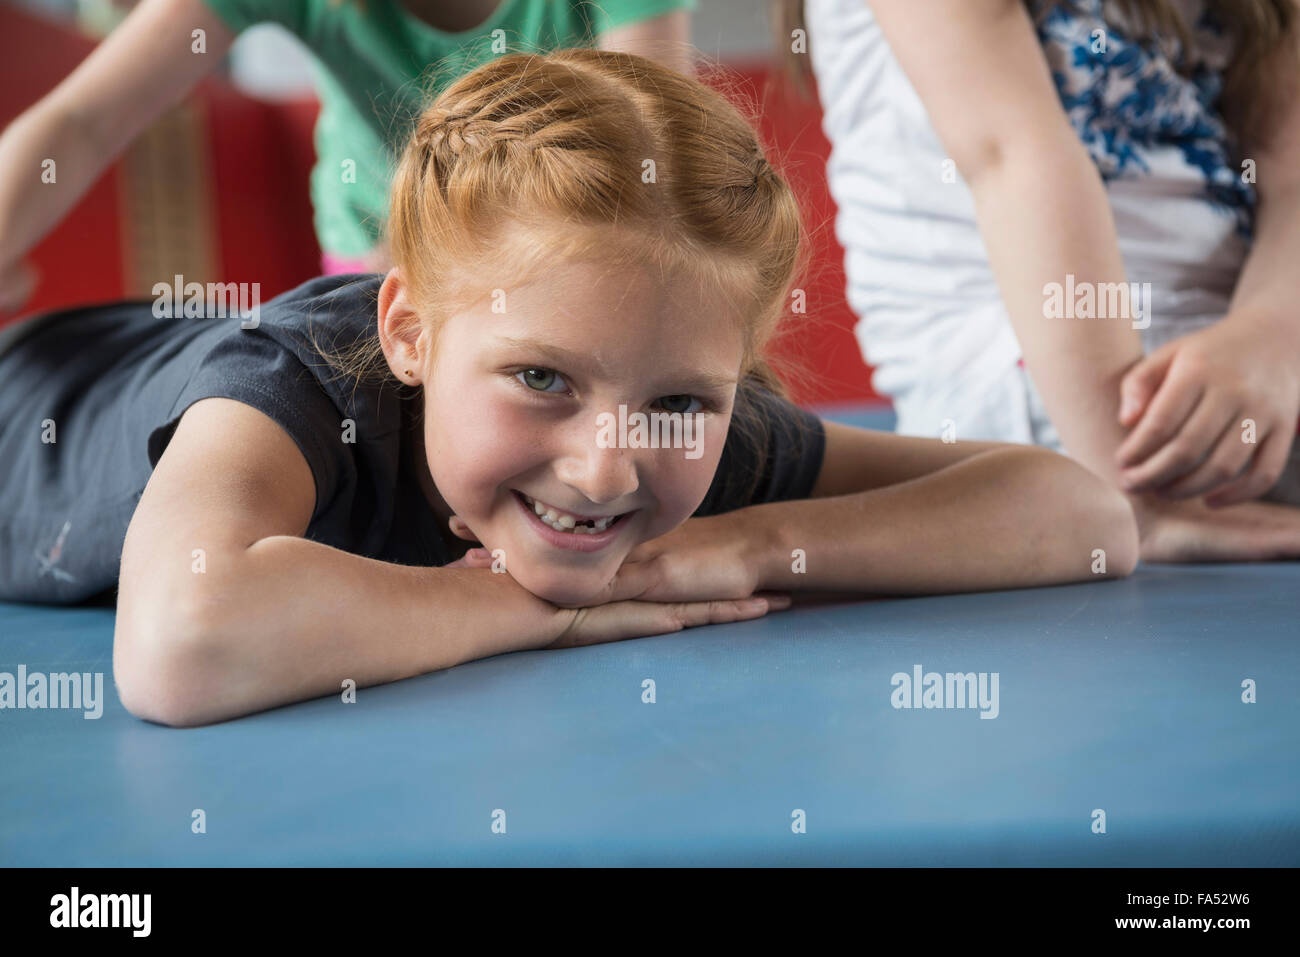 Girl lying on exercise mat in large gym of school, Bavaria, Munich, Germany - Stock Image